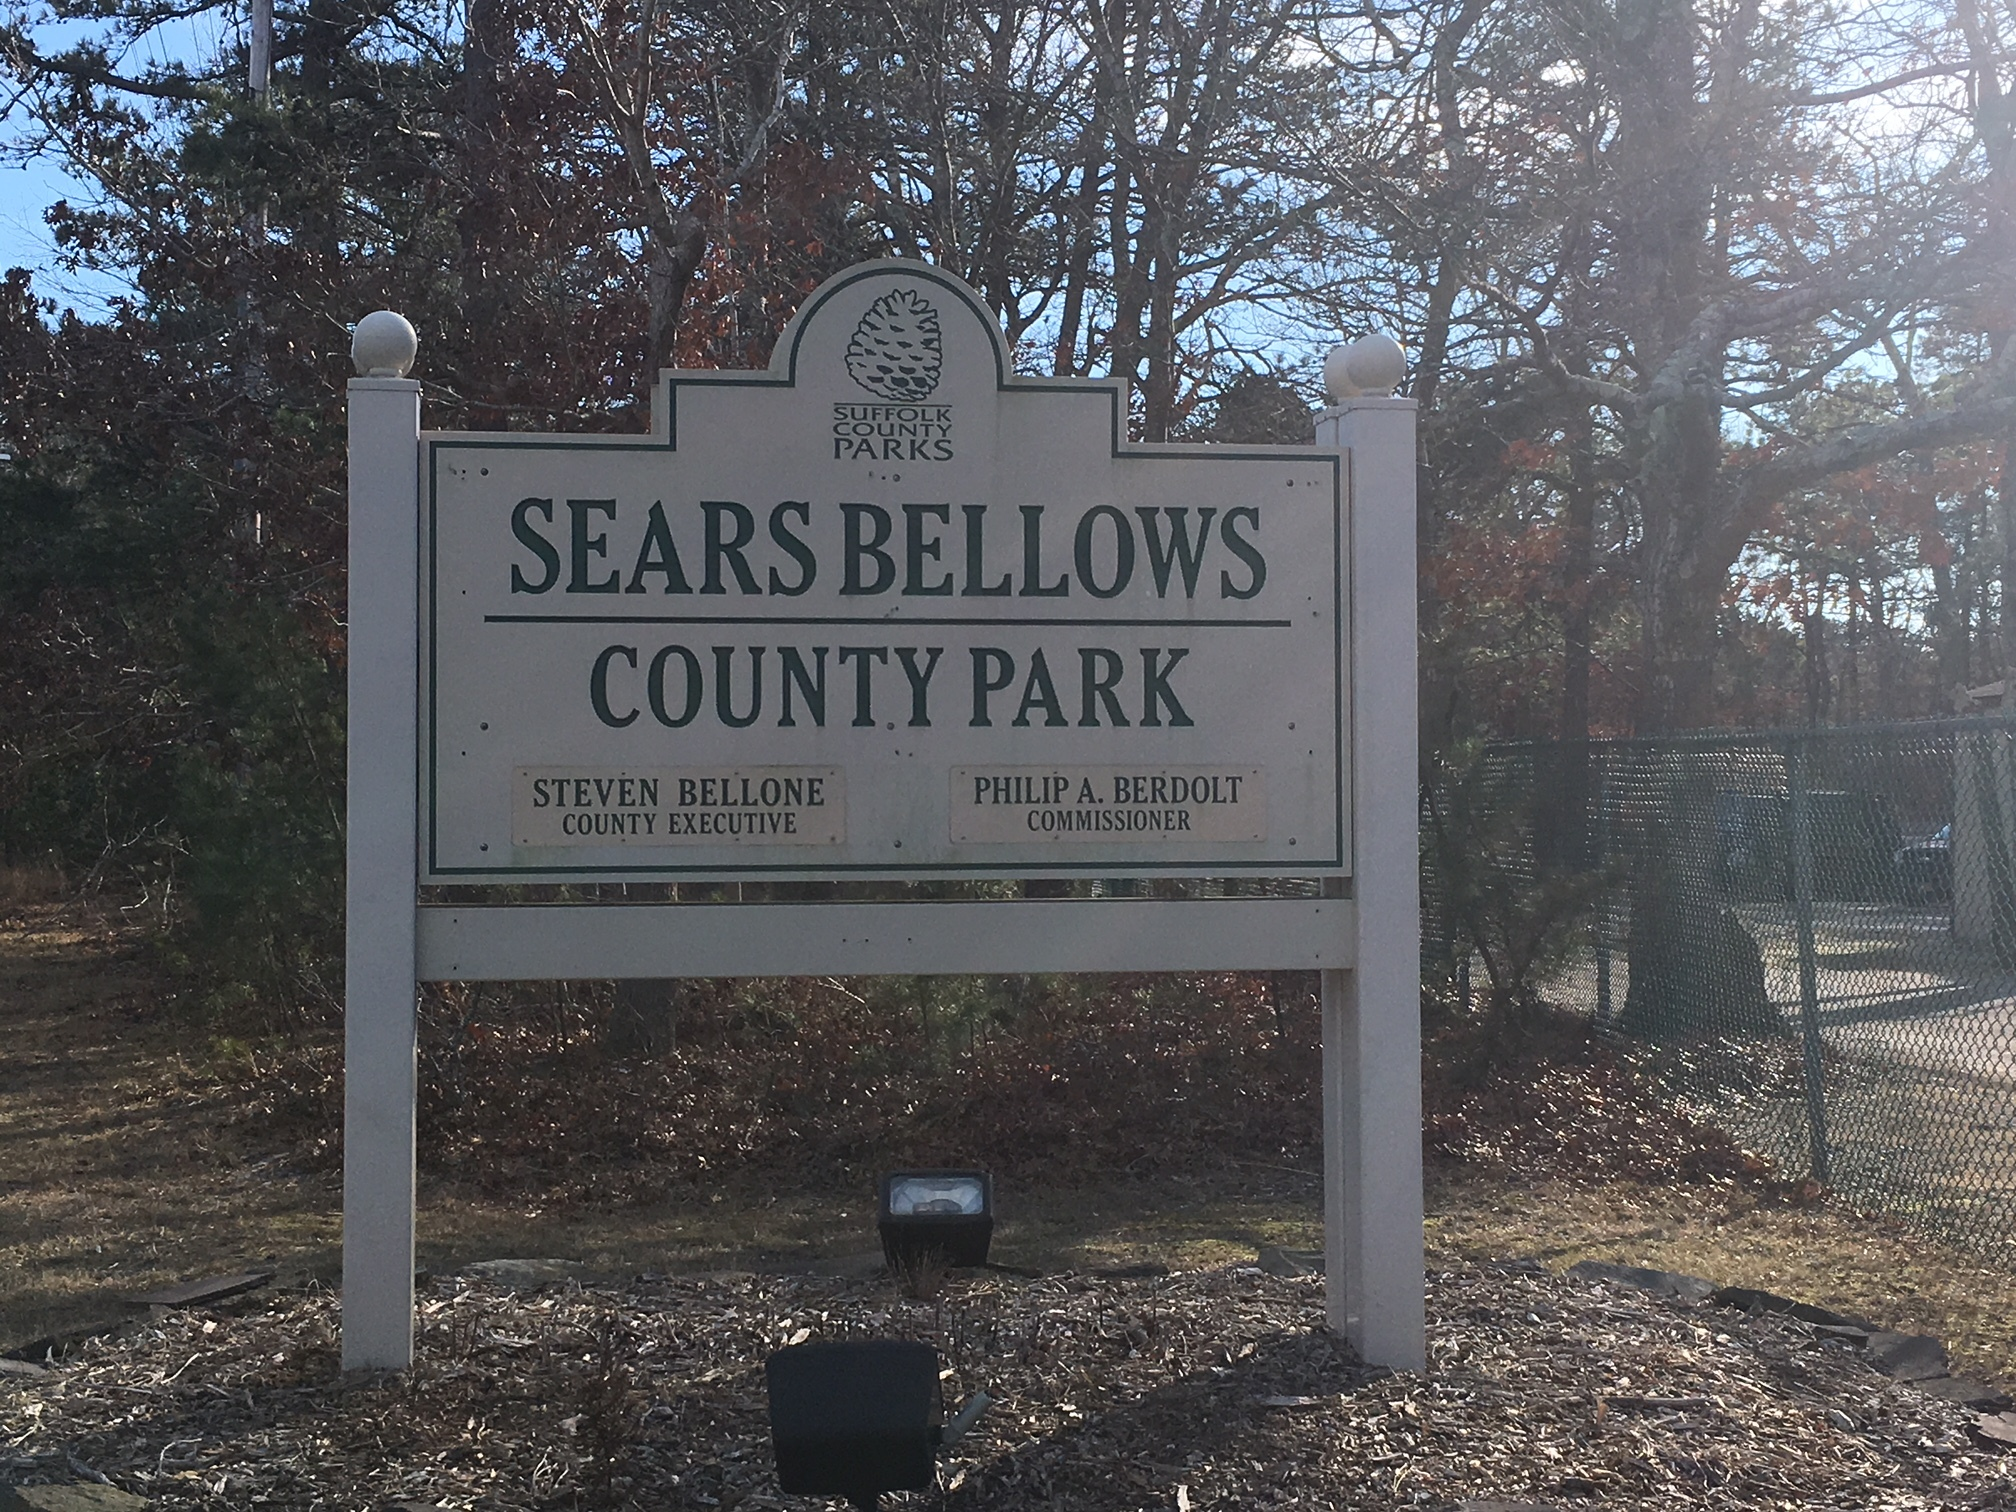 Southampton Town Police rescued hikers lost in Sears Bellows Park on Monday. KITTY MERRILL